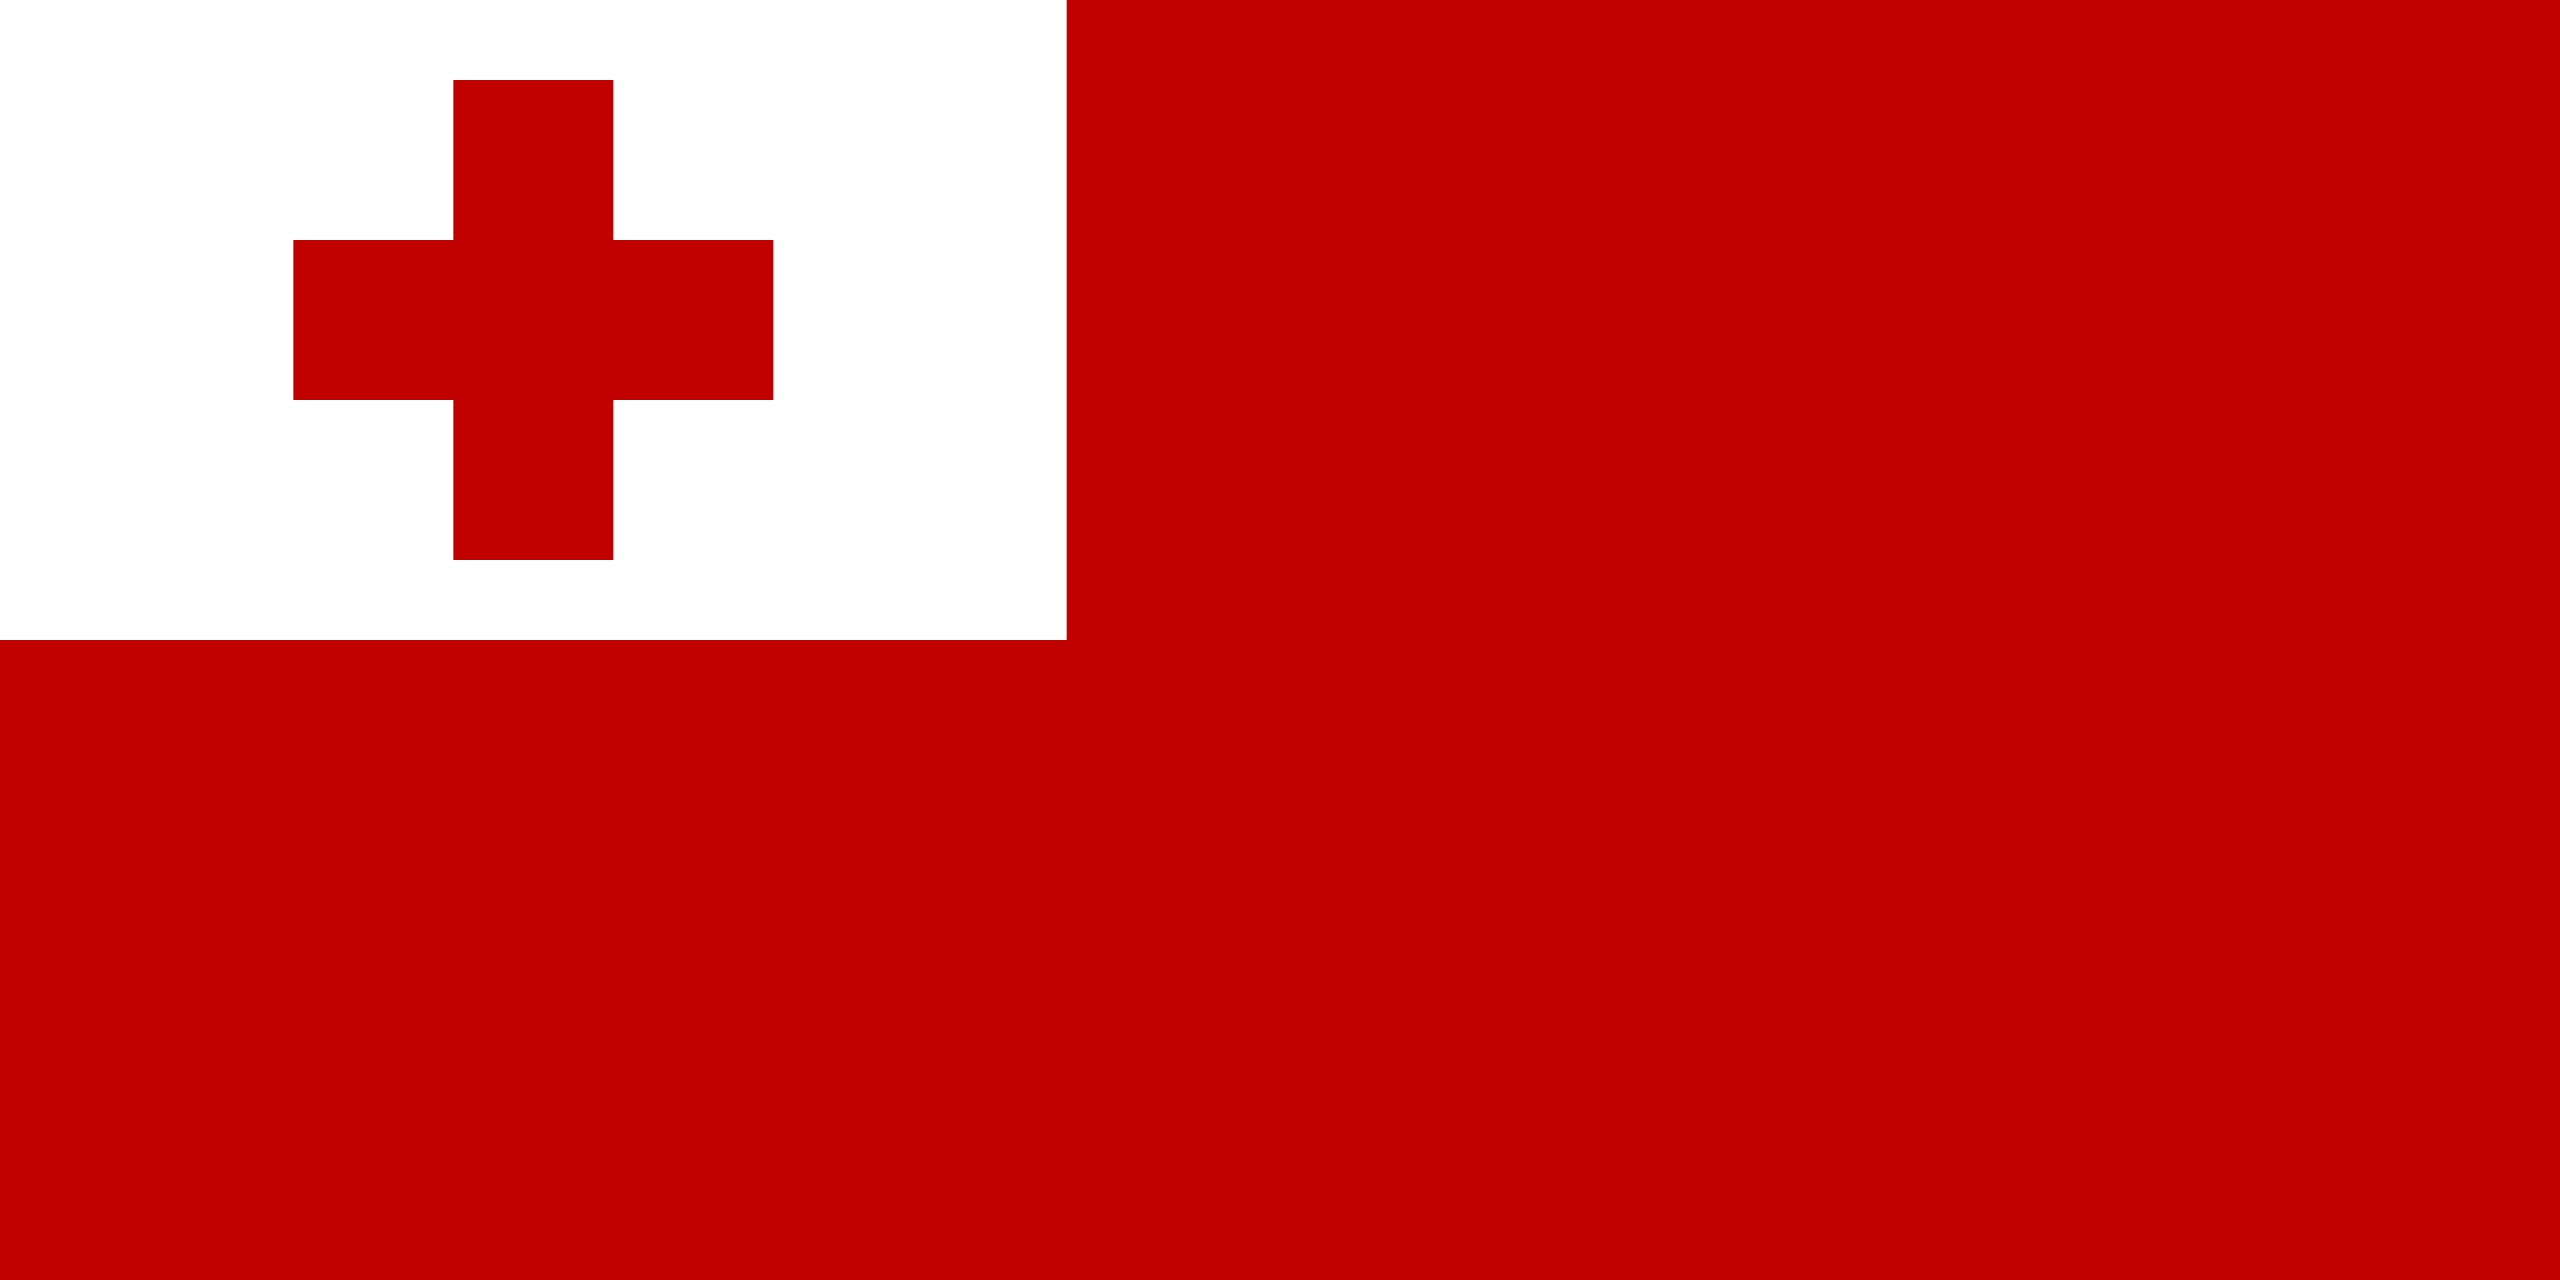 tonga, país, emblema, insignia, σύμβολο - Wallpapers HD - Professor-falken.com